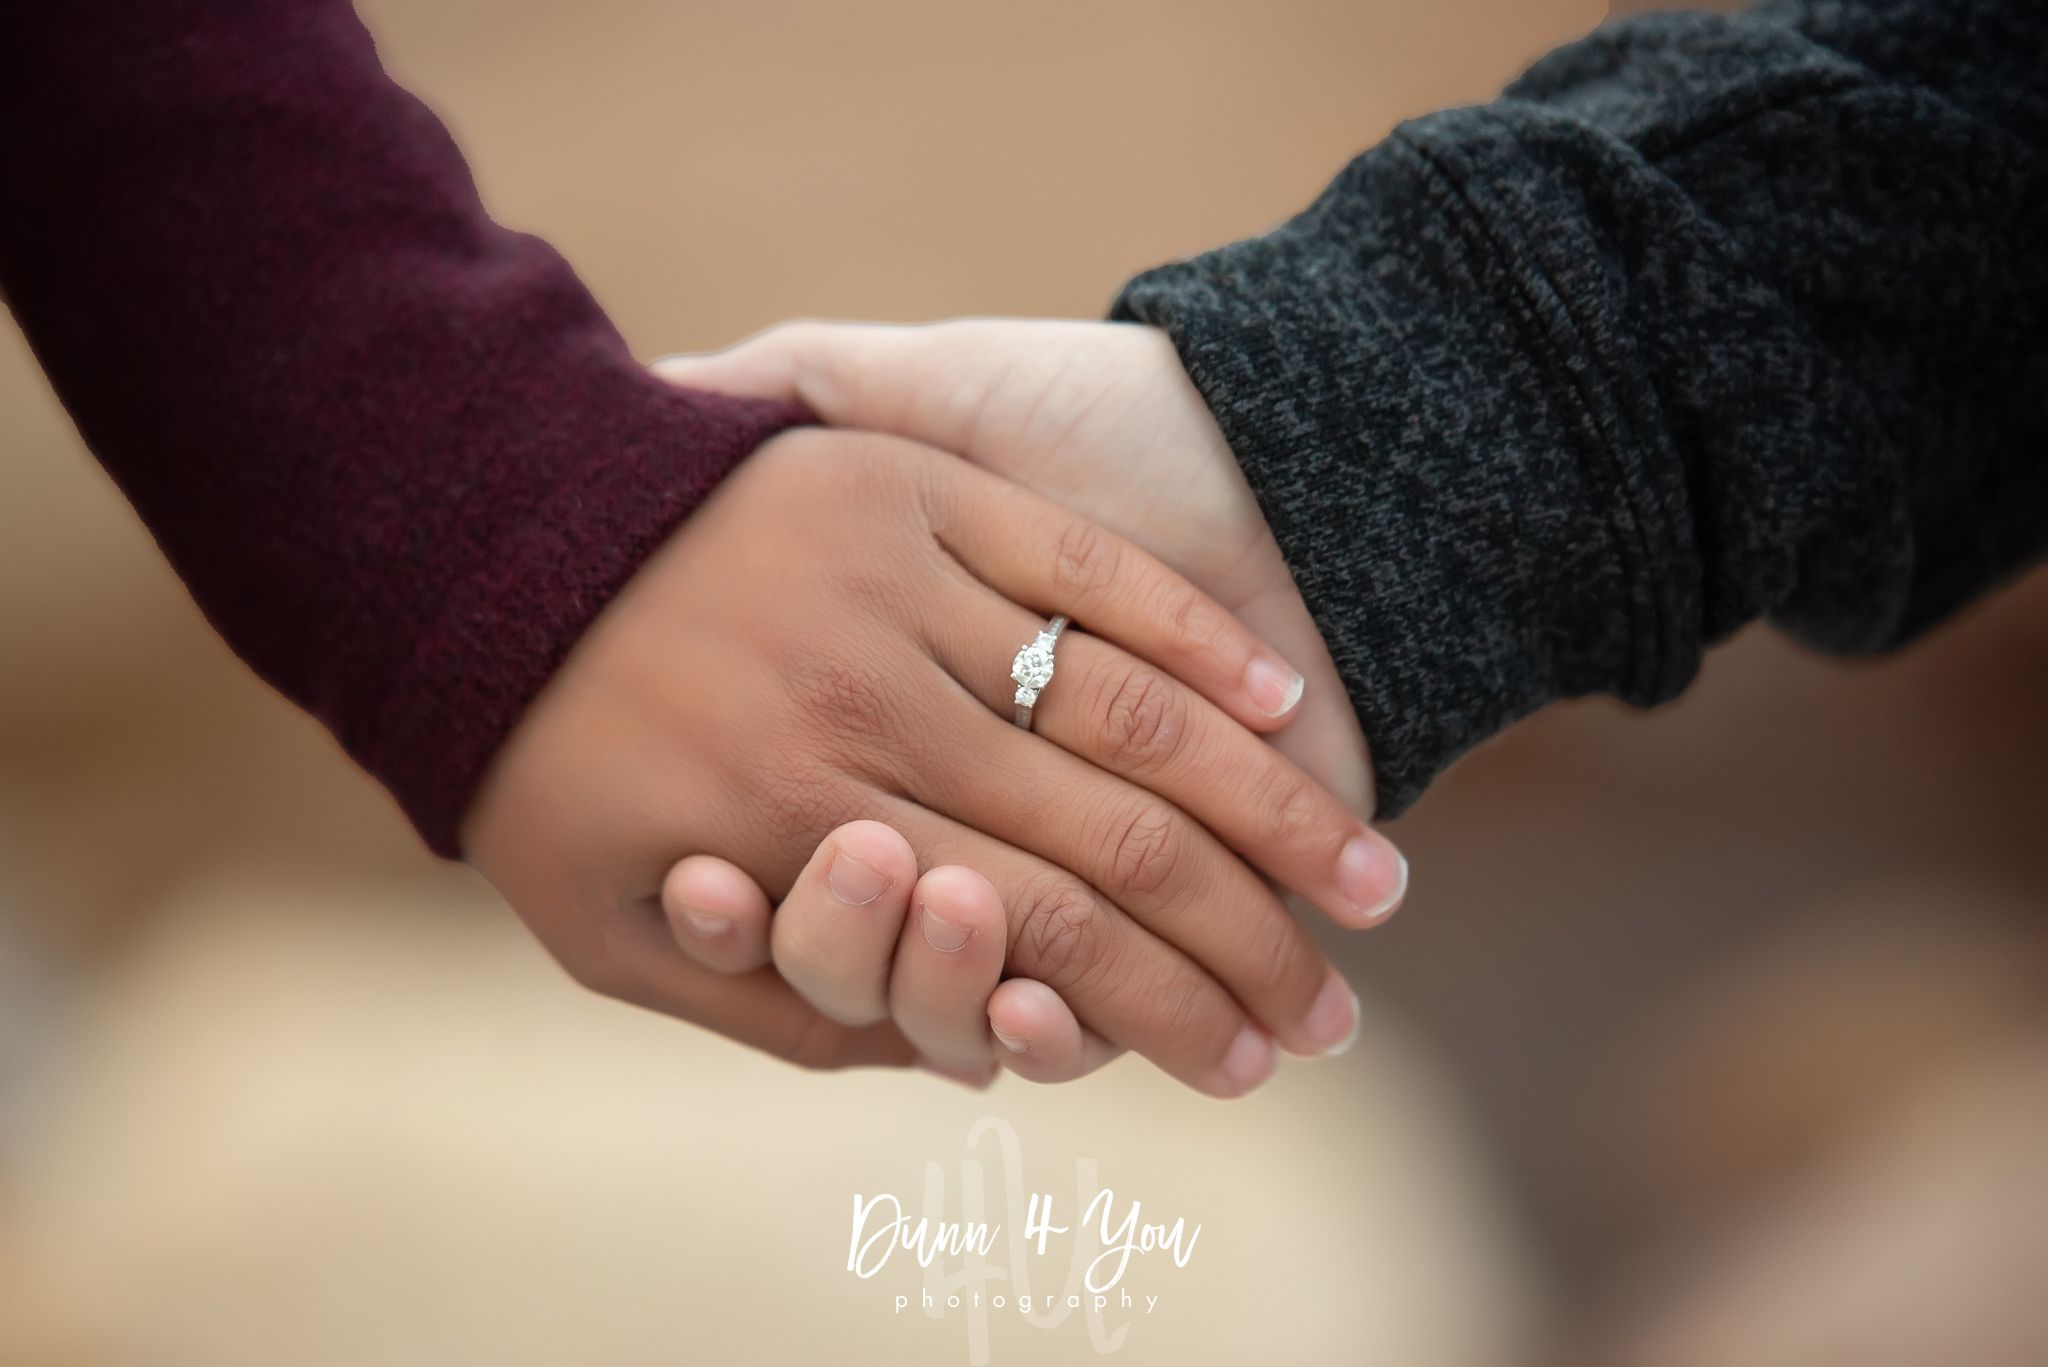 A couple's hands being held to show off engagement ring